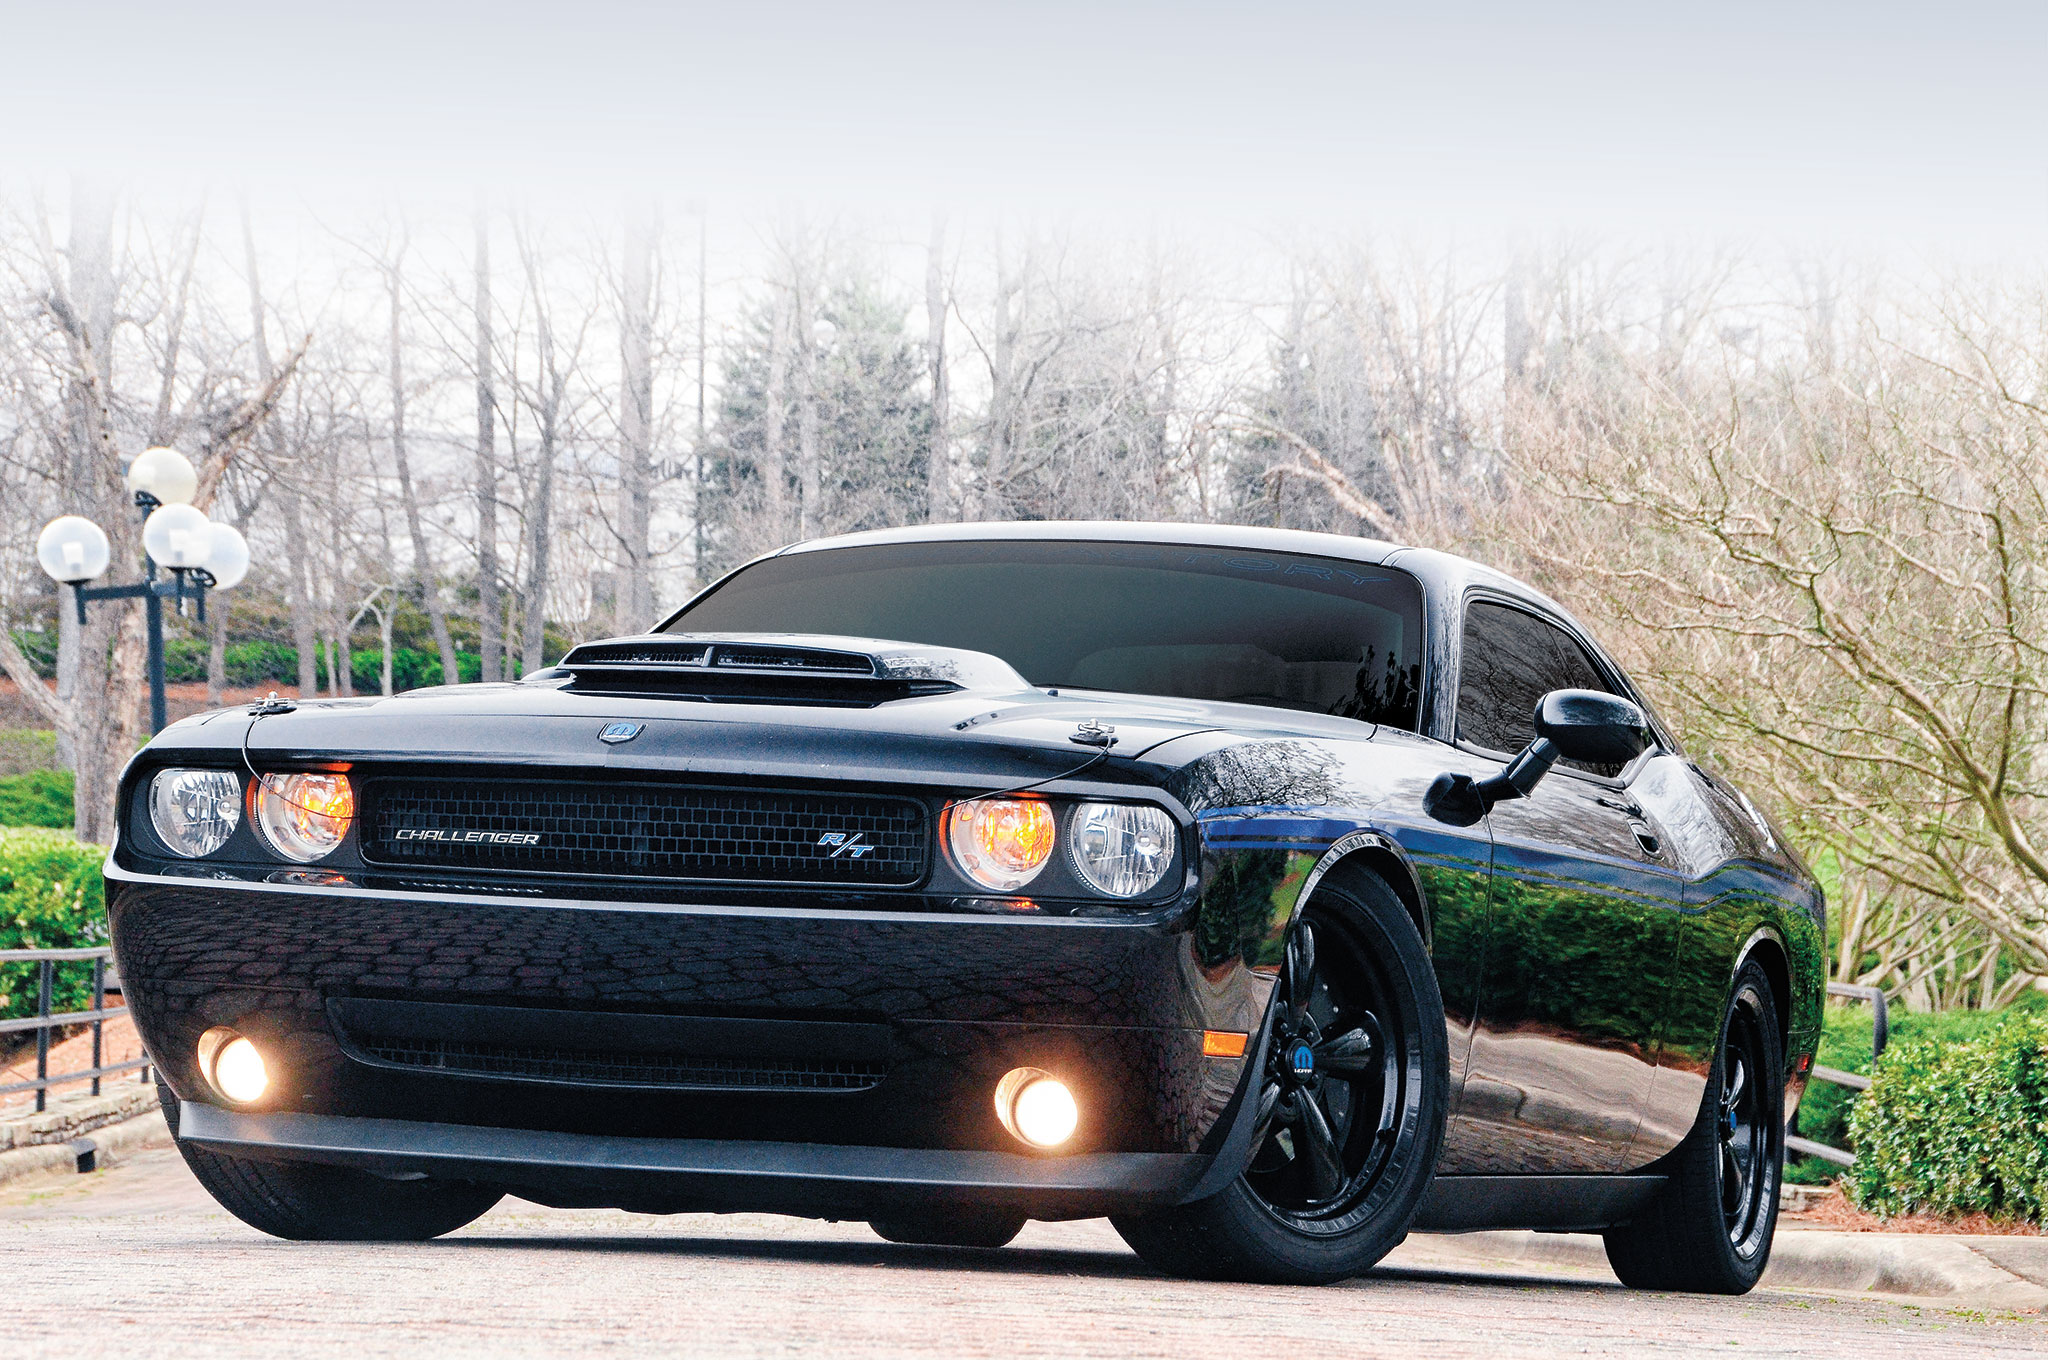 2010-mopar-dodge-challenger Cool Review About Landmark Dodge Morrow Ga with Captivating Photos Cars Review